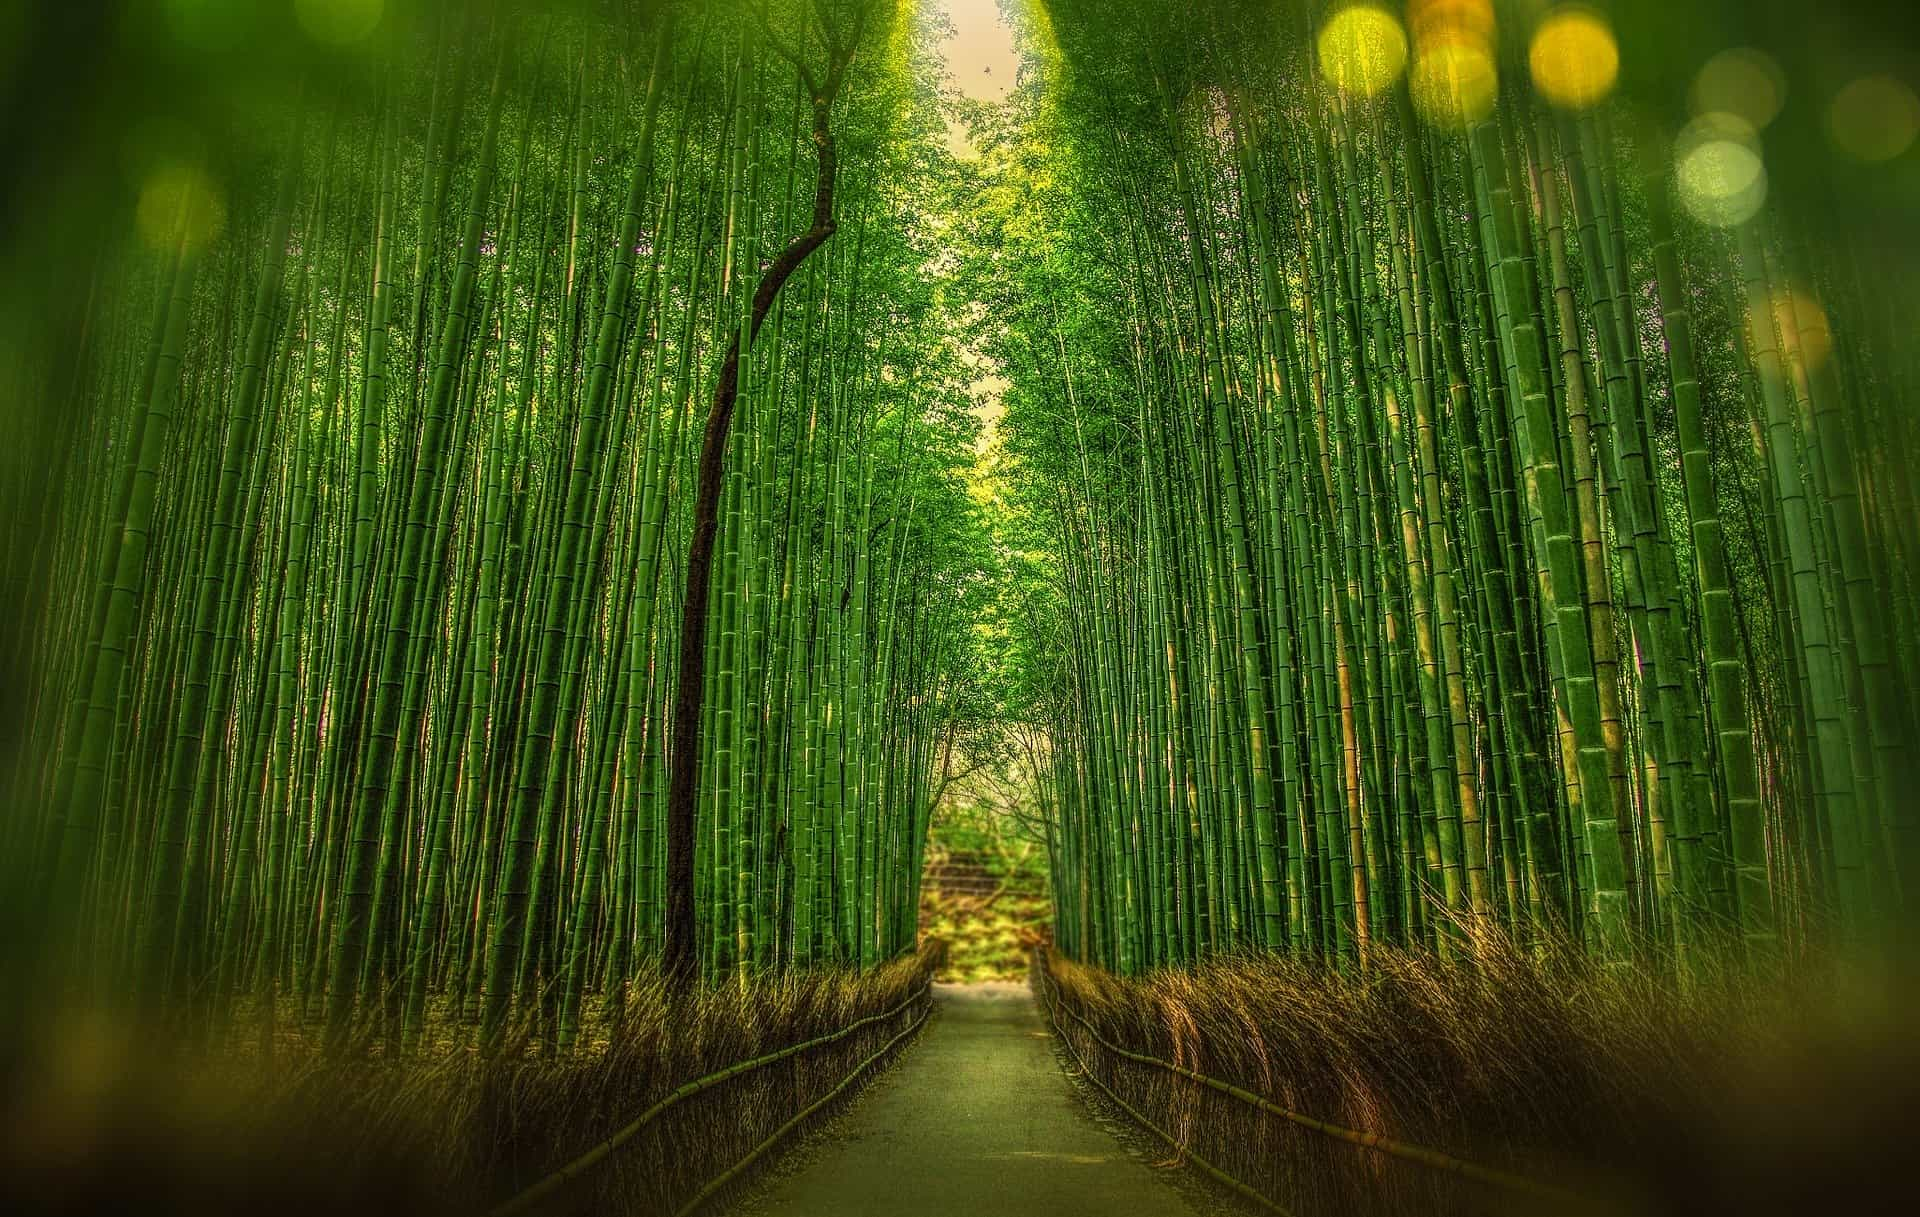 Bamboo Forest Things To Do in Kyoto